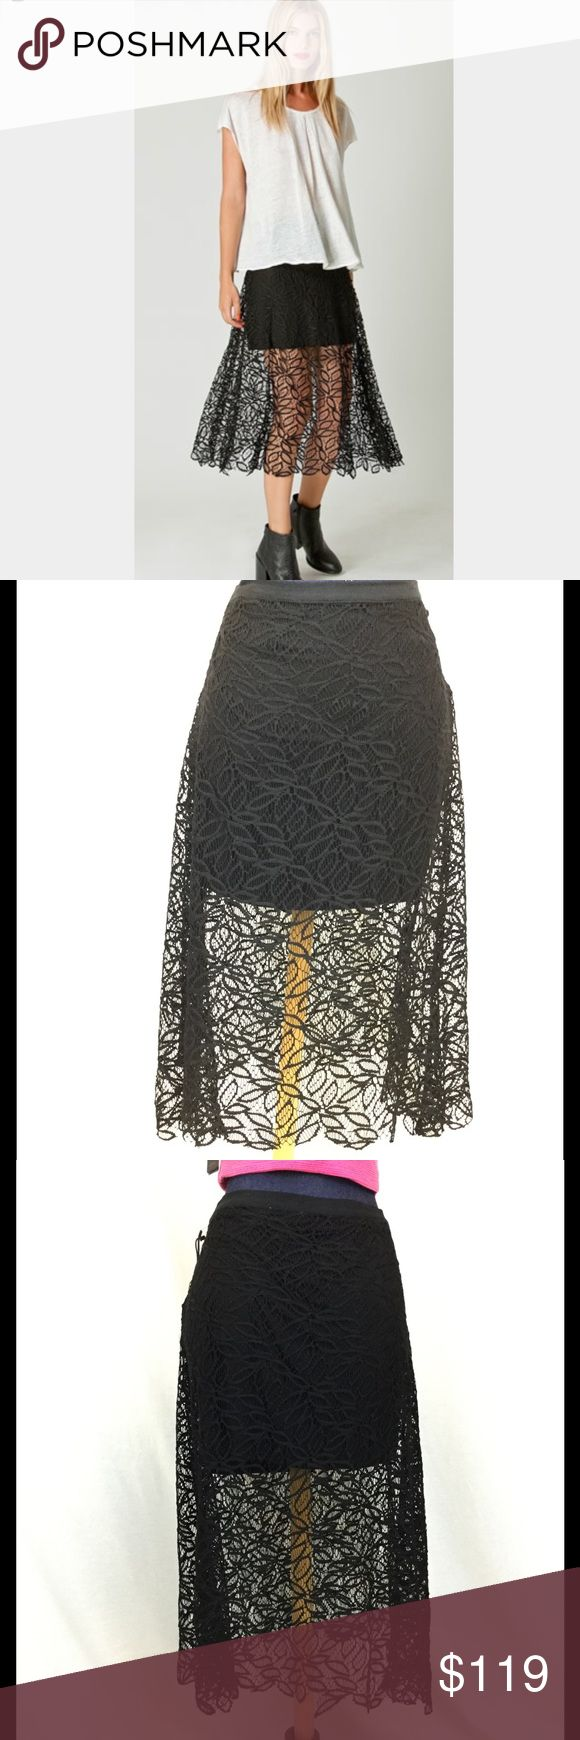 """LIBERTY GARDEN NEW Medium Lace Hi Low Maxi Skirt Stunning New w/ Tags Liberty Garden lace illusion skirt. Featuring an all over lace maxi over-skirt and black mini under skirt. Looks amazing with so many colors. You can tell by the vibe that this is a brand carried at Free People. Purchased at Nordstroms. One of those amazing pieces that can anchor your spring to fall wardrobe! Zipper. 100% cotton. Trim Polyester. Black. Approximate flat measurem.: Size Medium. waist 16 , length 28"""" at…"""